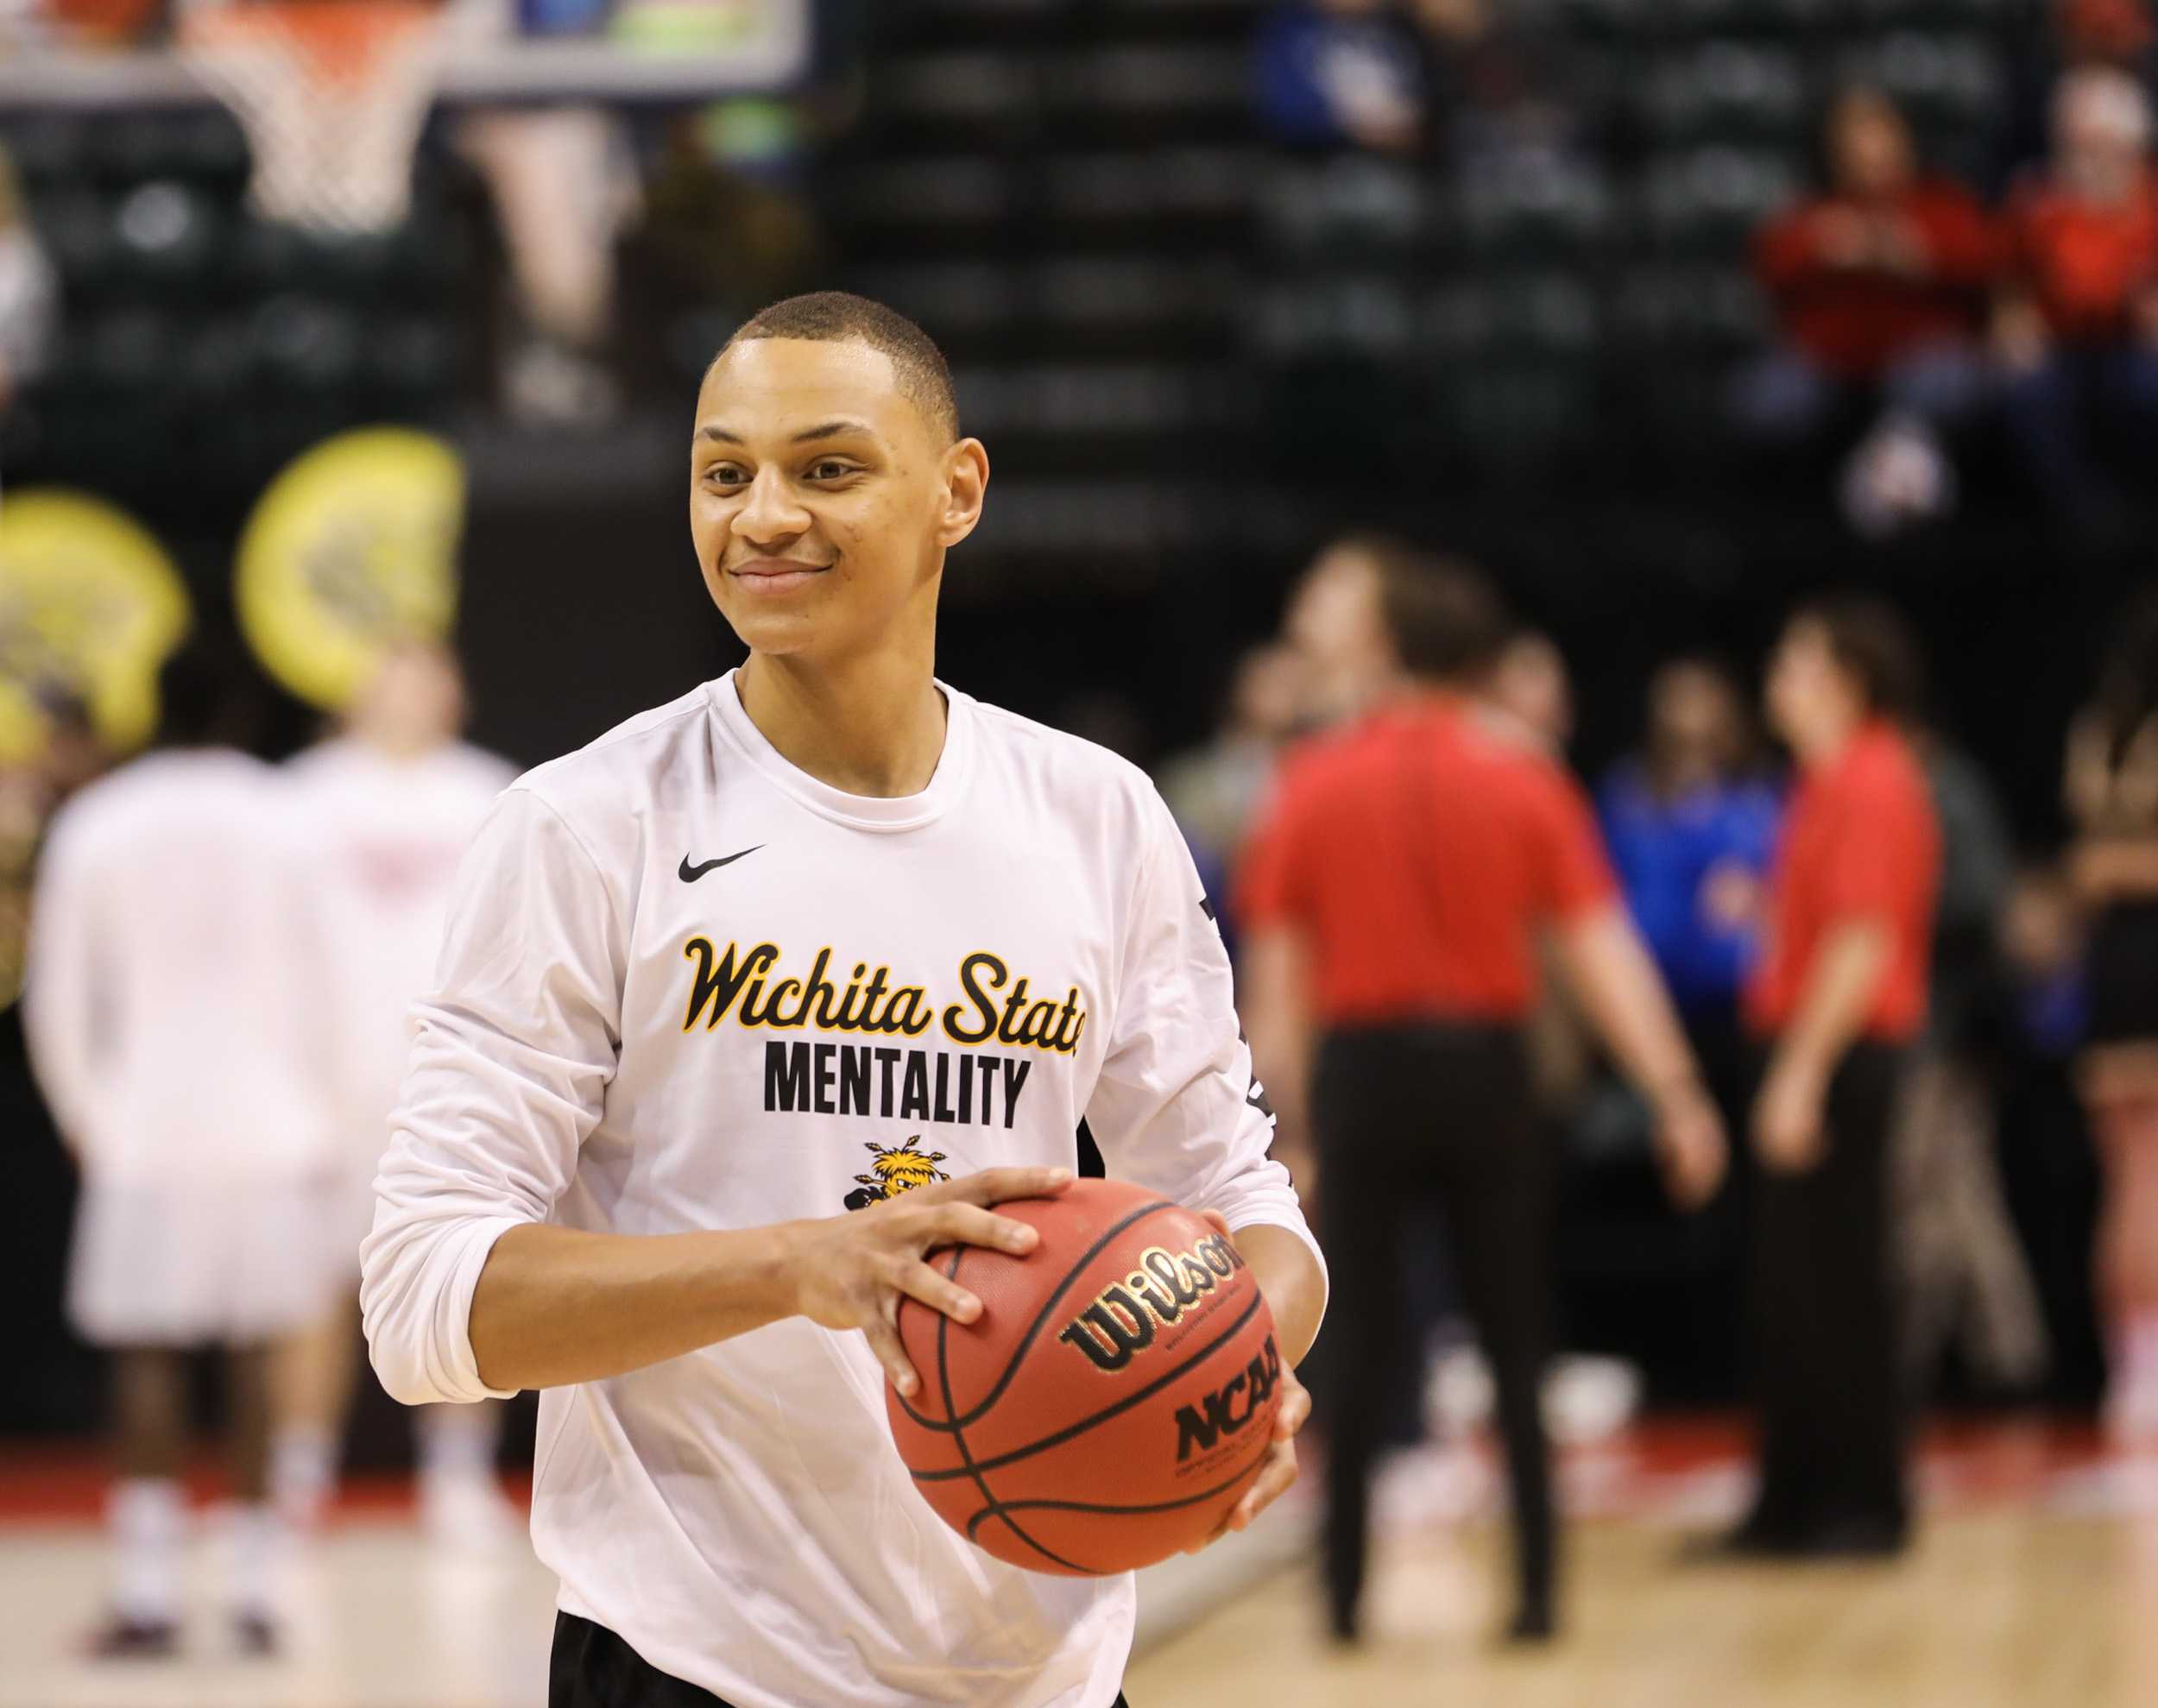 Wichita State's C.J. Keyser smiles while warming up before the NCAA Tournament first round game against Dayton in Banker Life Fieldhouse in Indianapolis. (Mar. 17, 2017)